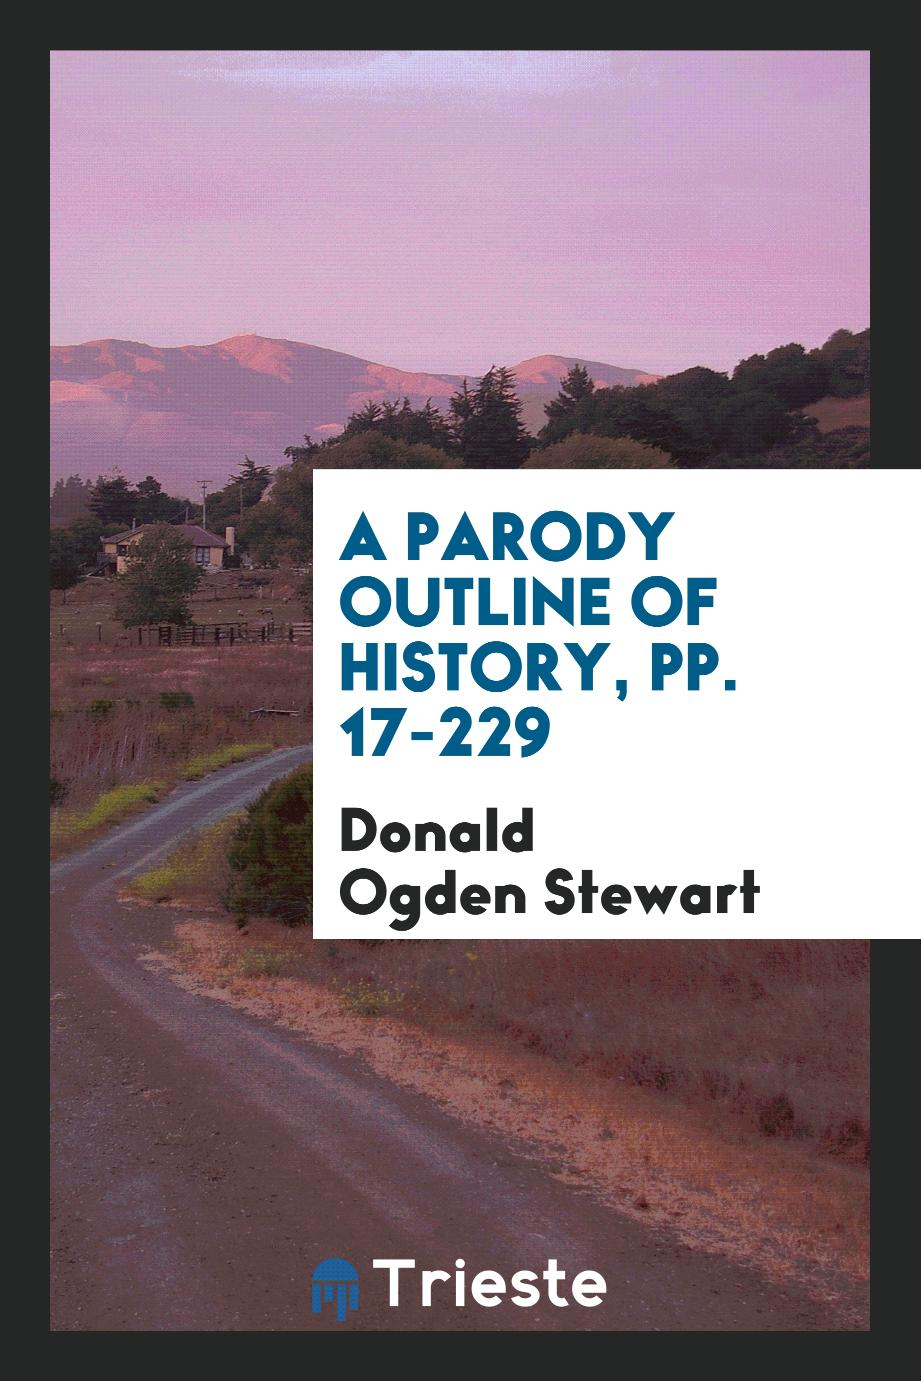 A Parody Outline of History, pp. 17-229